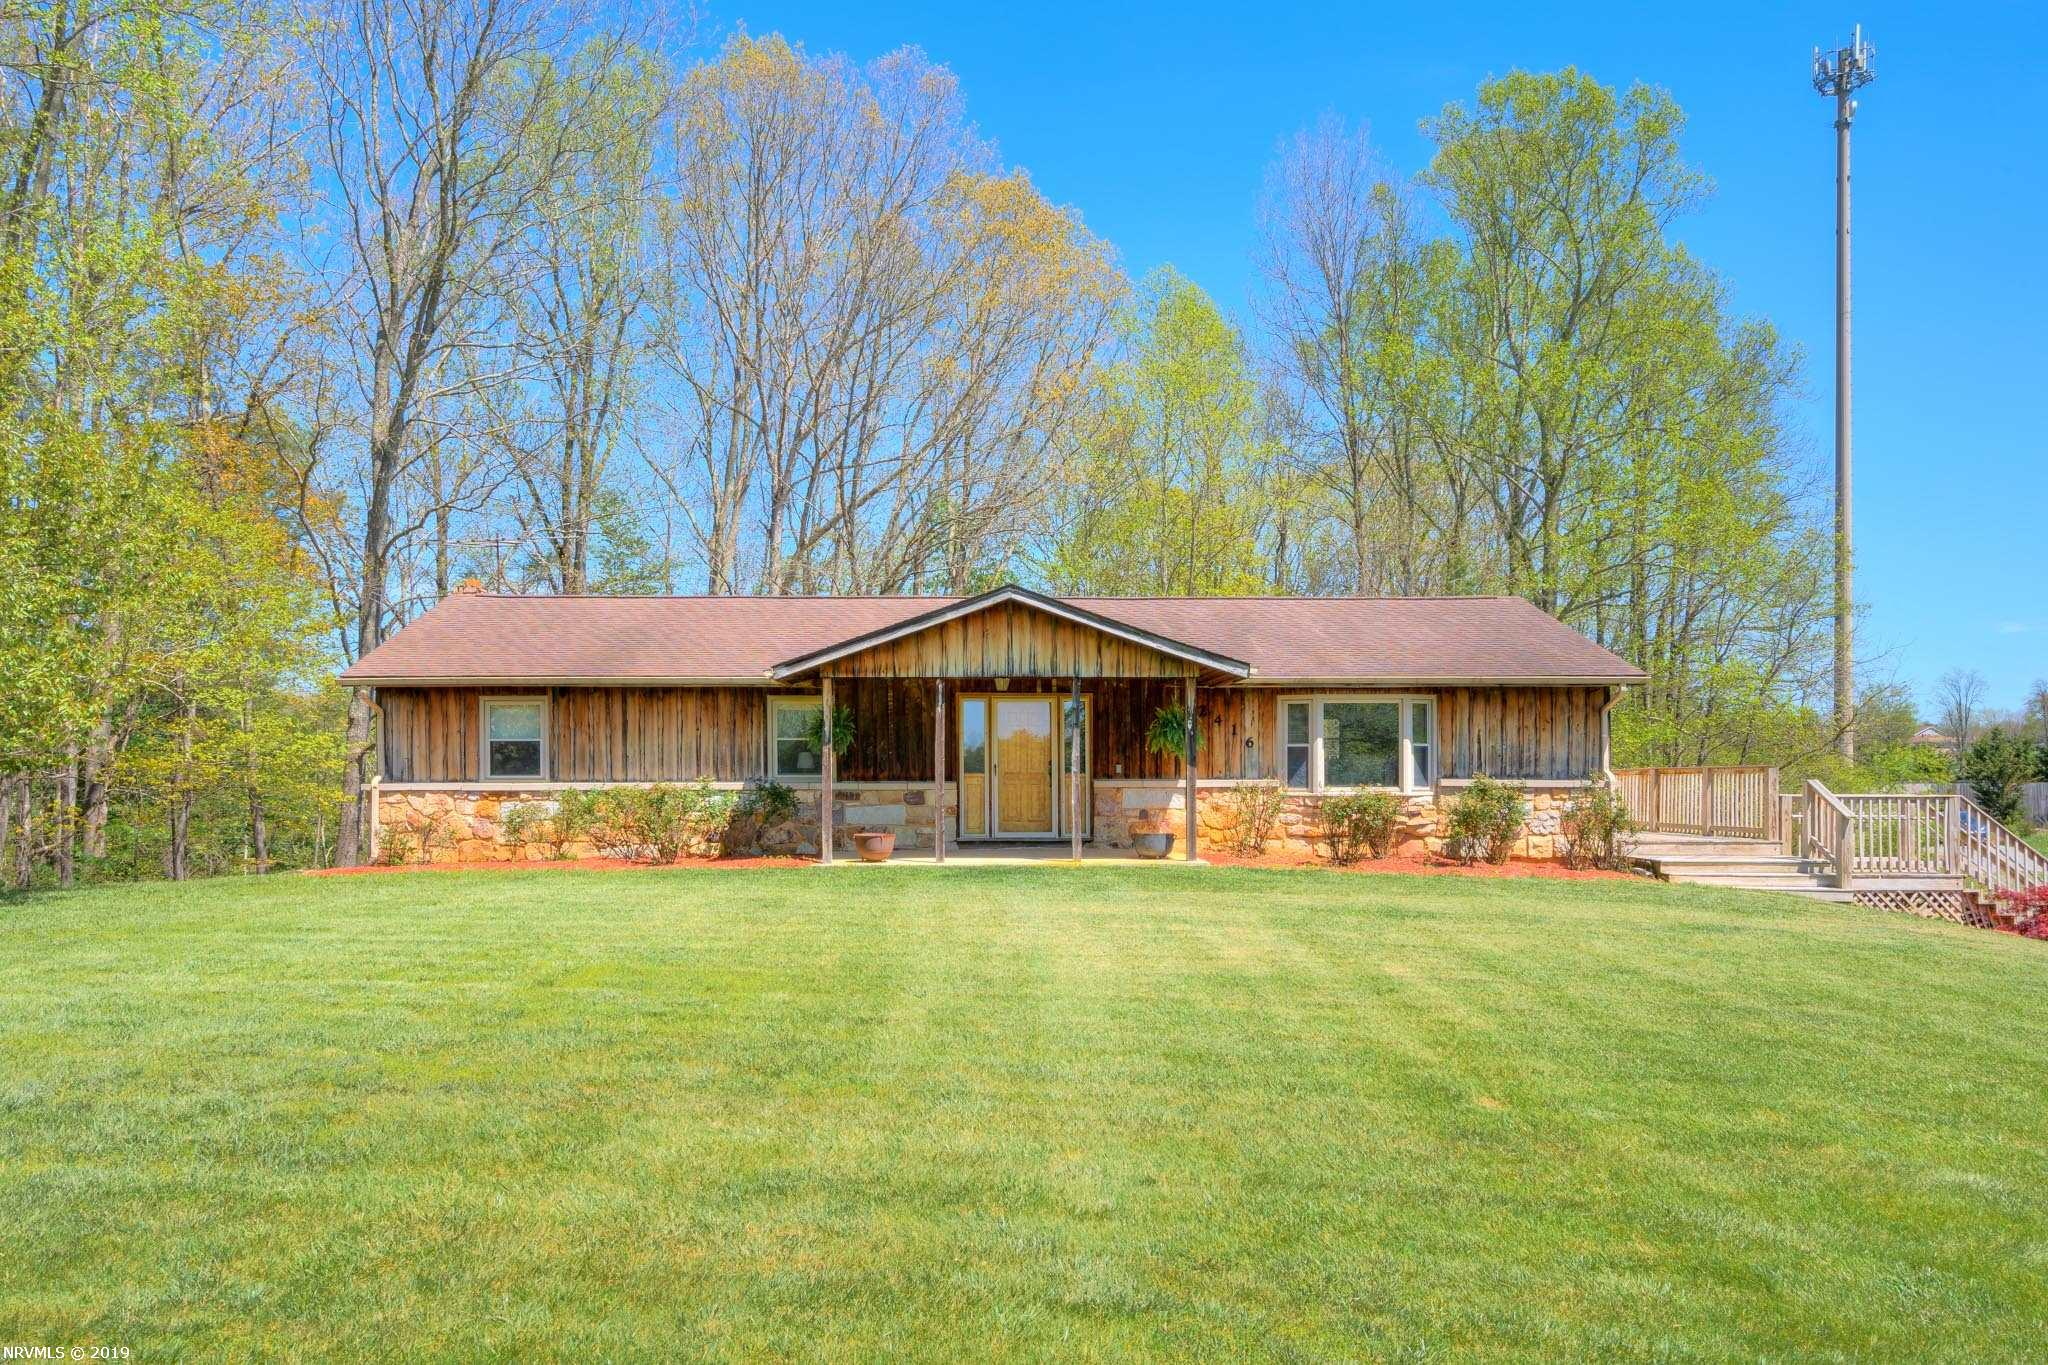 Come see this wonderful custom built home! All doors, cabinets, molding, and rock foundation were hand built by the seller. You'll love the creek frontage and view from the large wrap around deck, perfect for entertaining this fall. This home offers room to grow and has a perfect pasture for horses or other live stock. Secluded and peaceful, you are still only 5 miles from shopping in town limits and 6 miles from Lane Stadium!